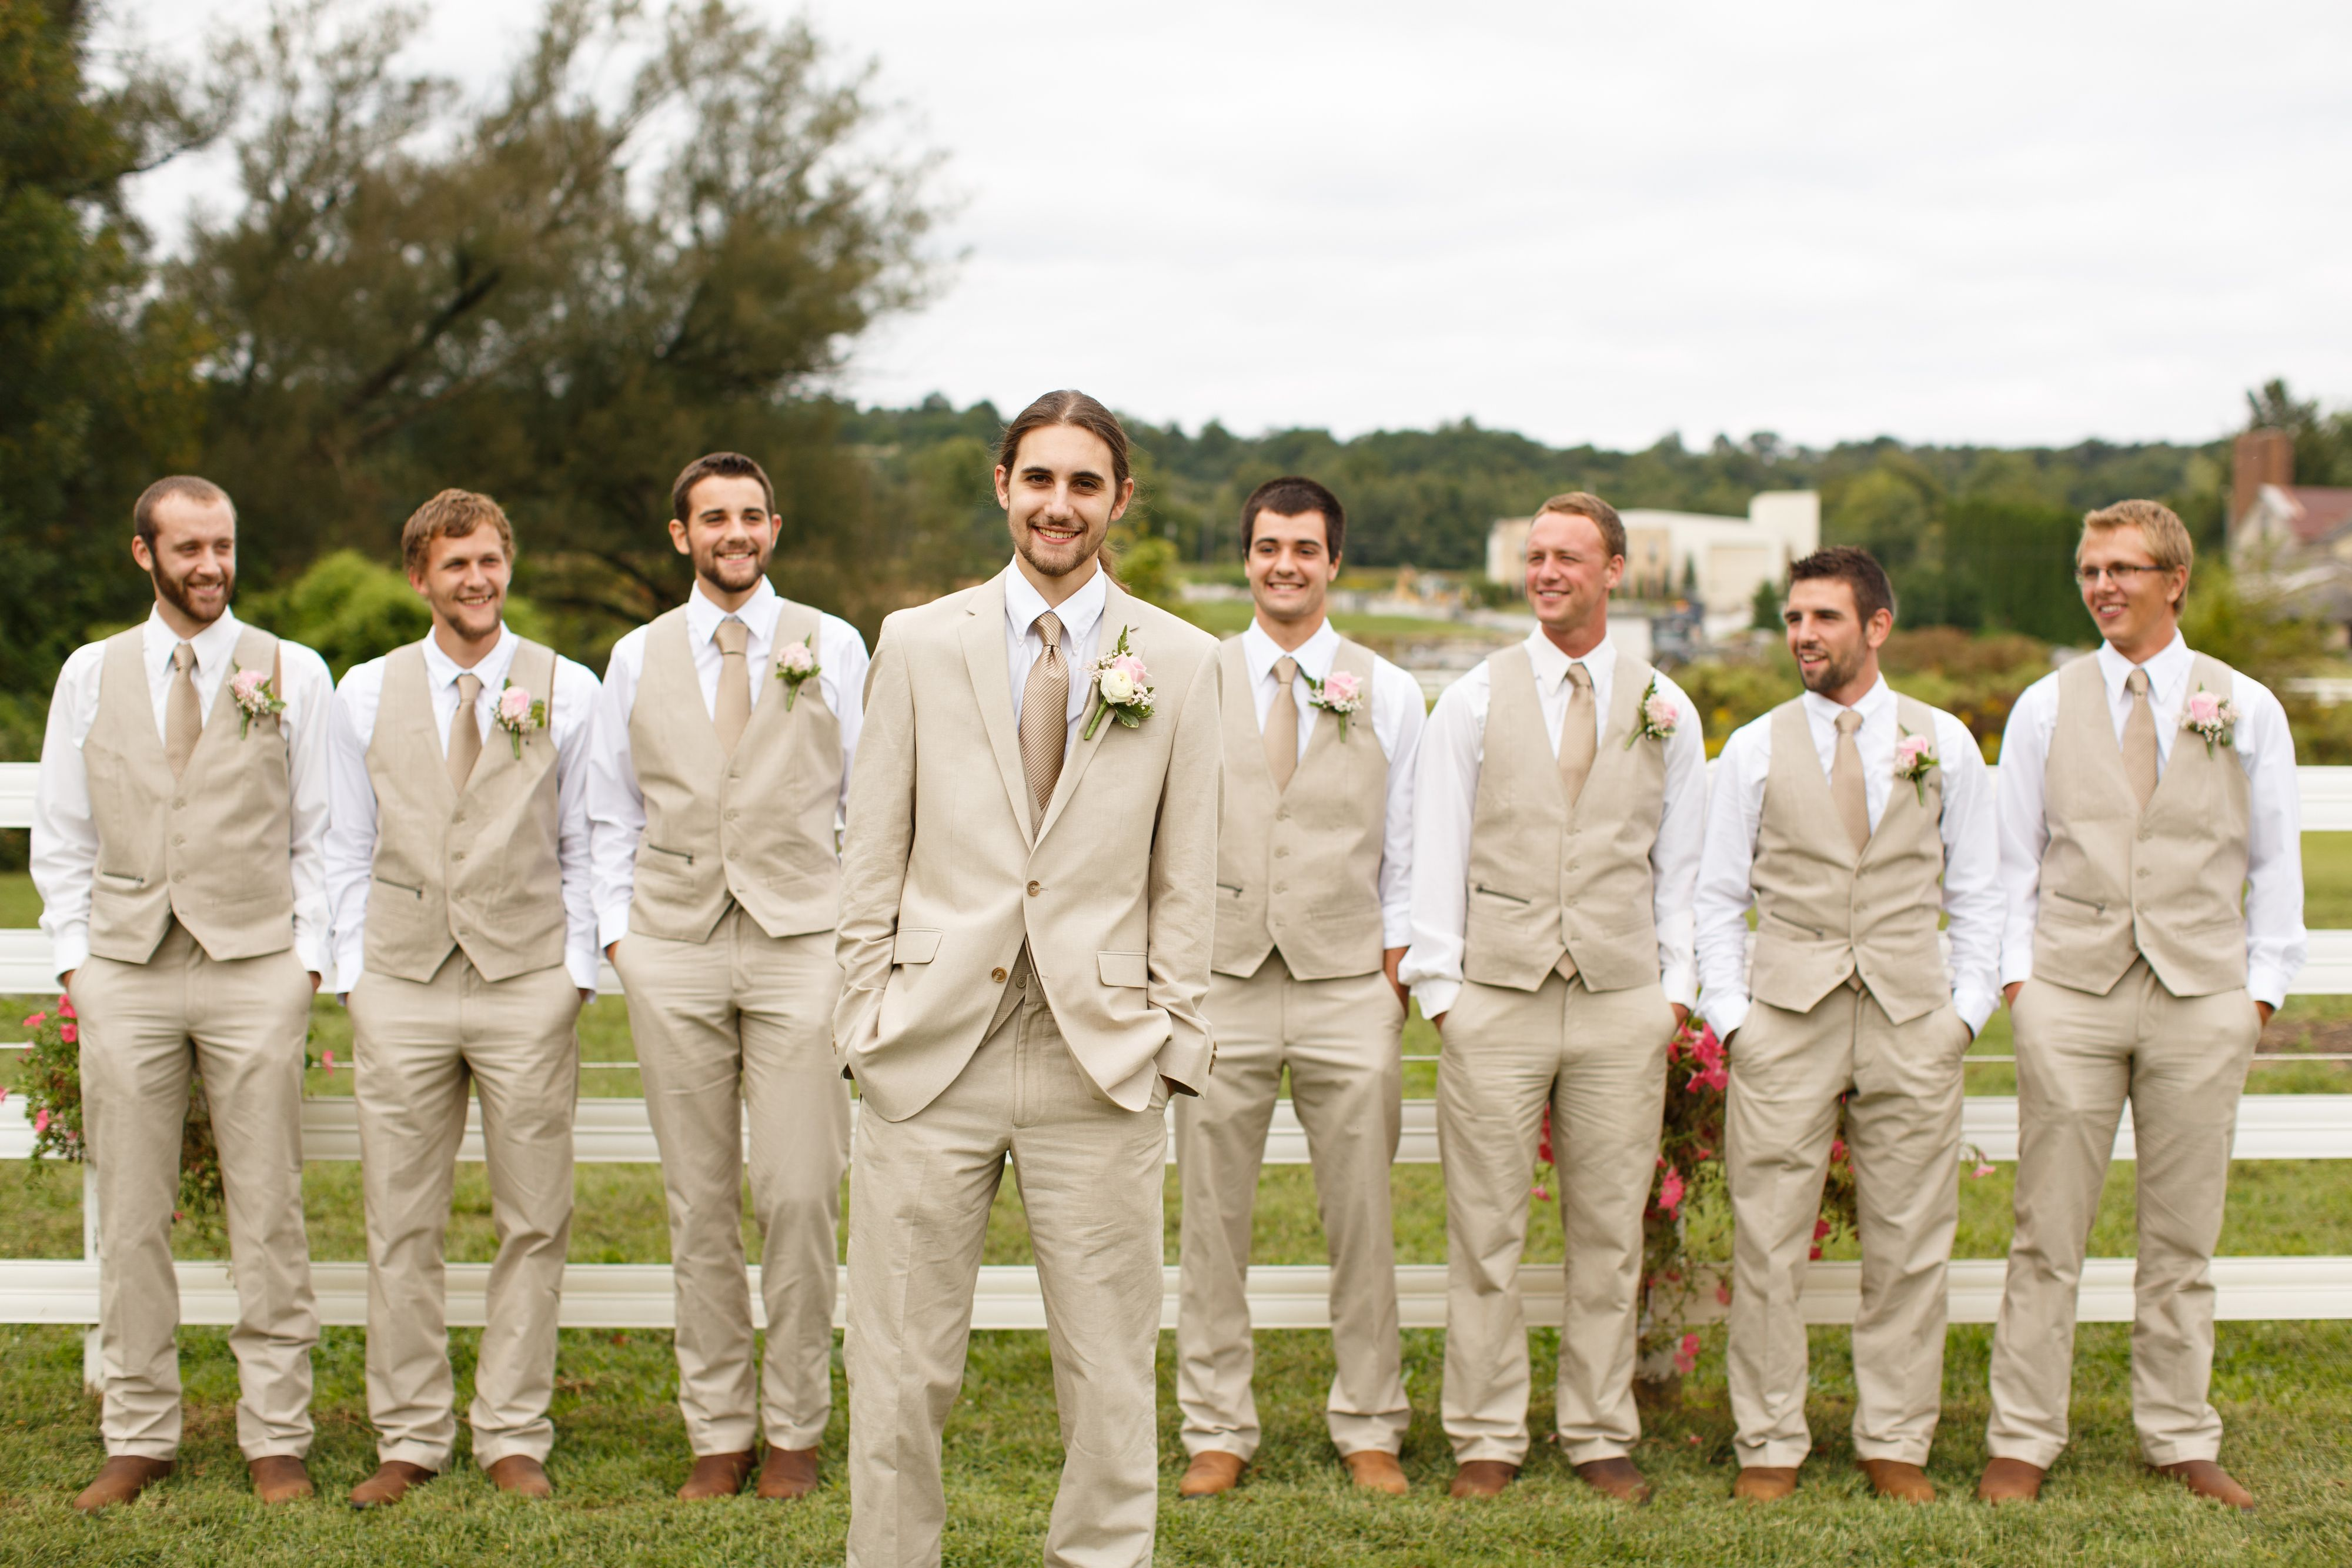 Autumn Evening Wedding Inspiration | Khaki suits, Red vest and ...